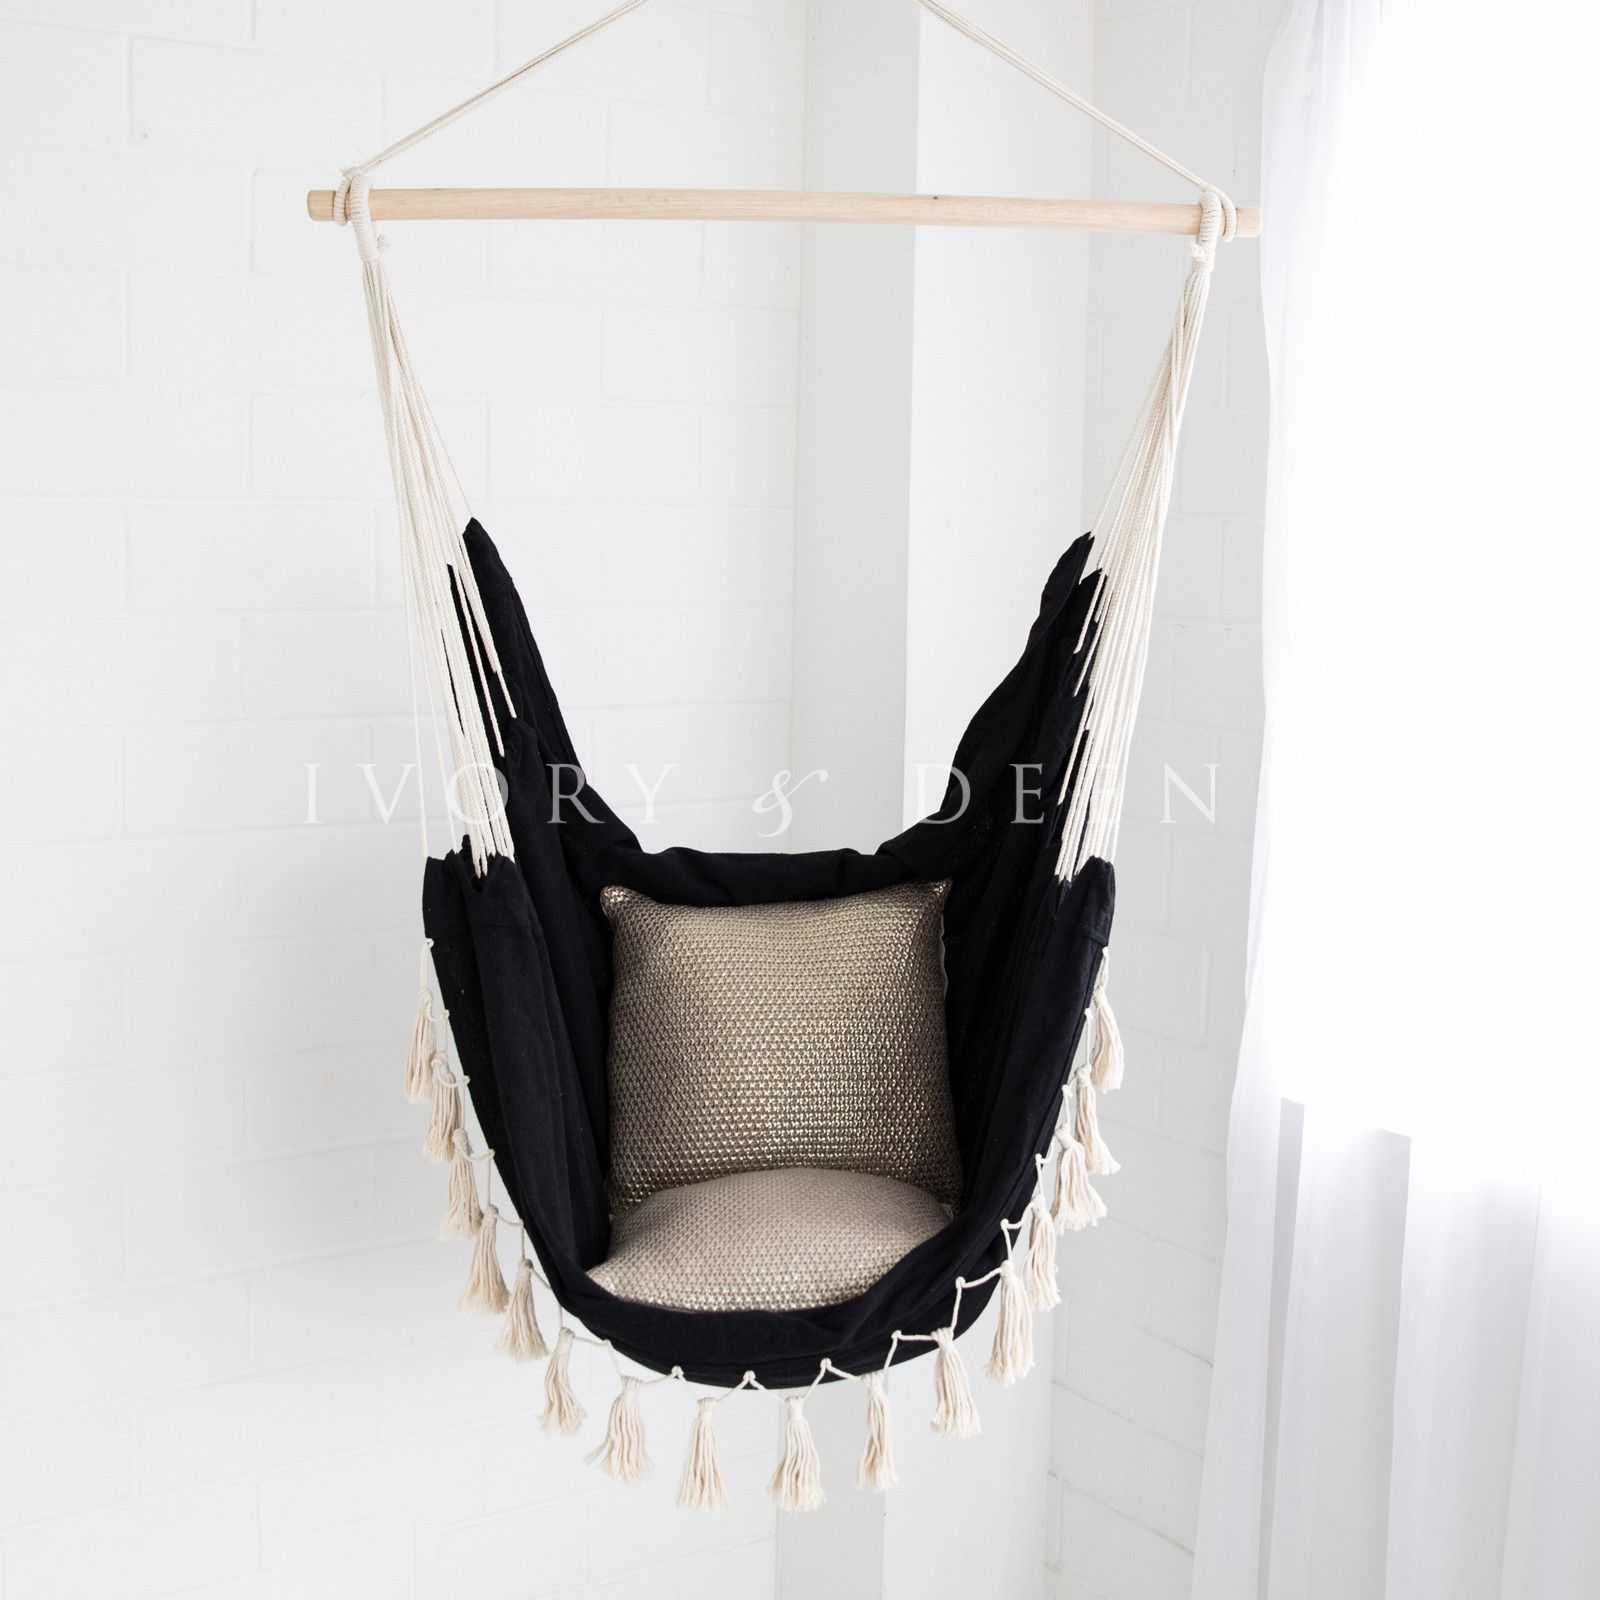 Soho hammock chair black woven cotton hammock chair and room ideas